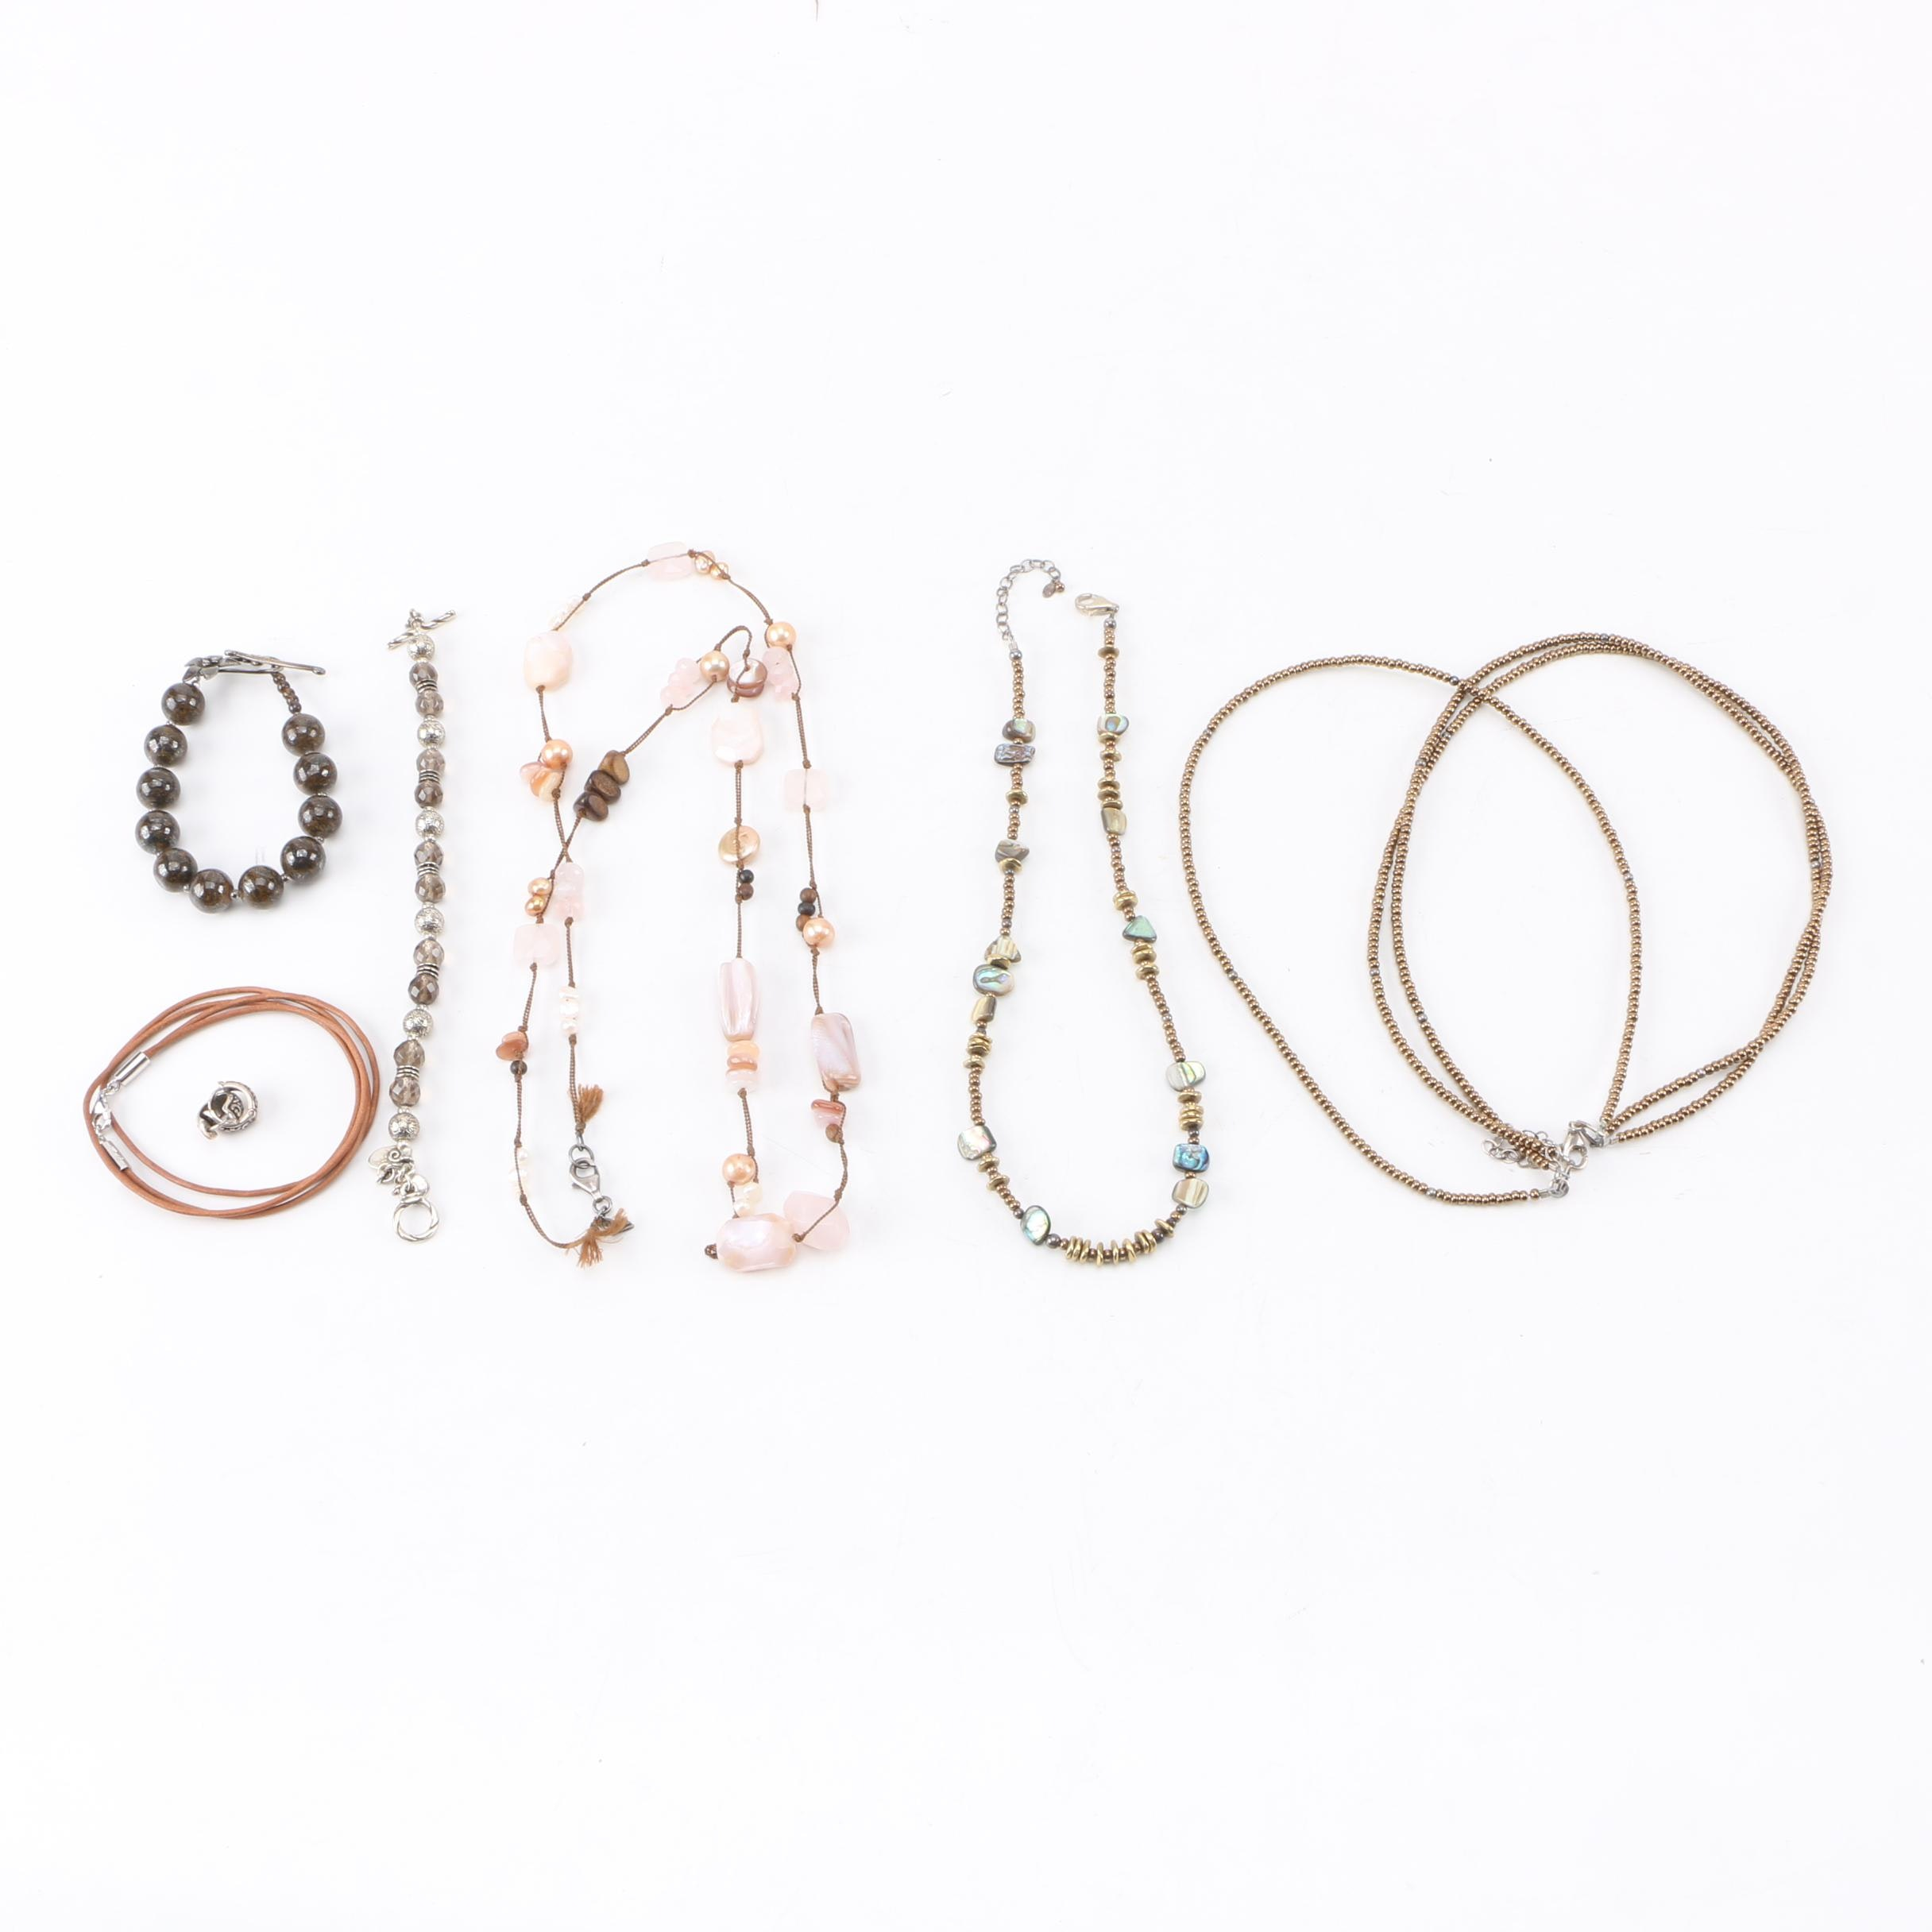 Silpada Sterling Silver Jewelry Including Abalone and Rose Quartz